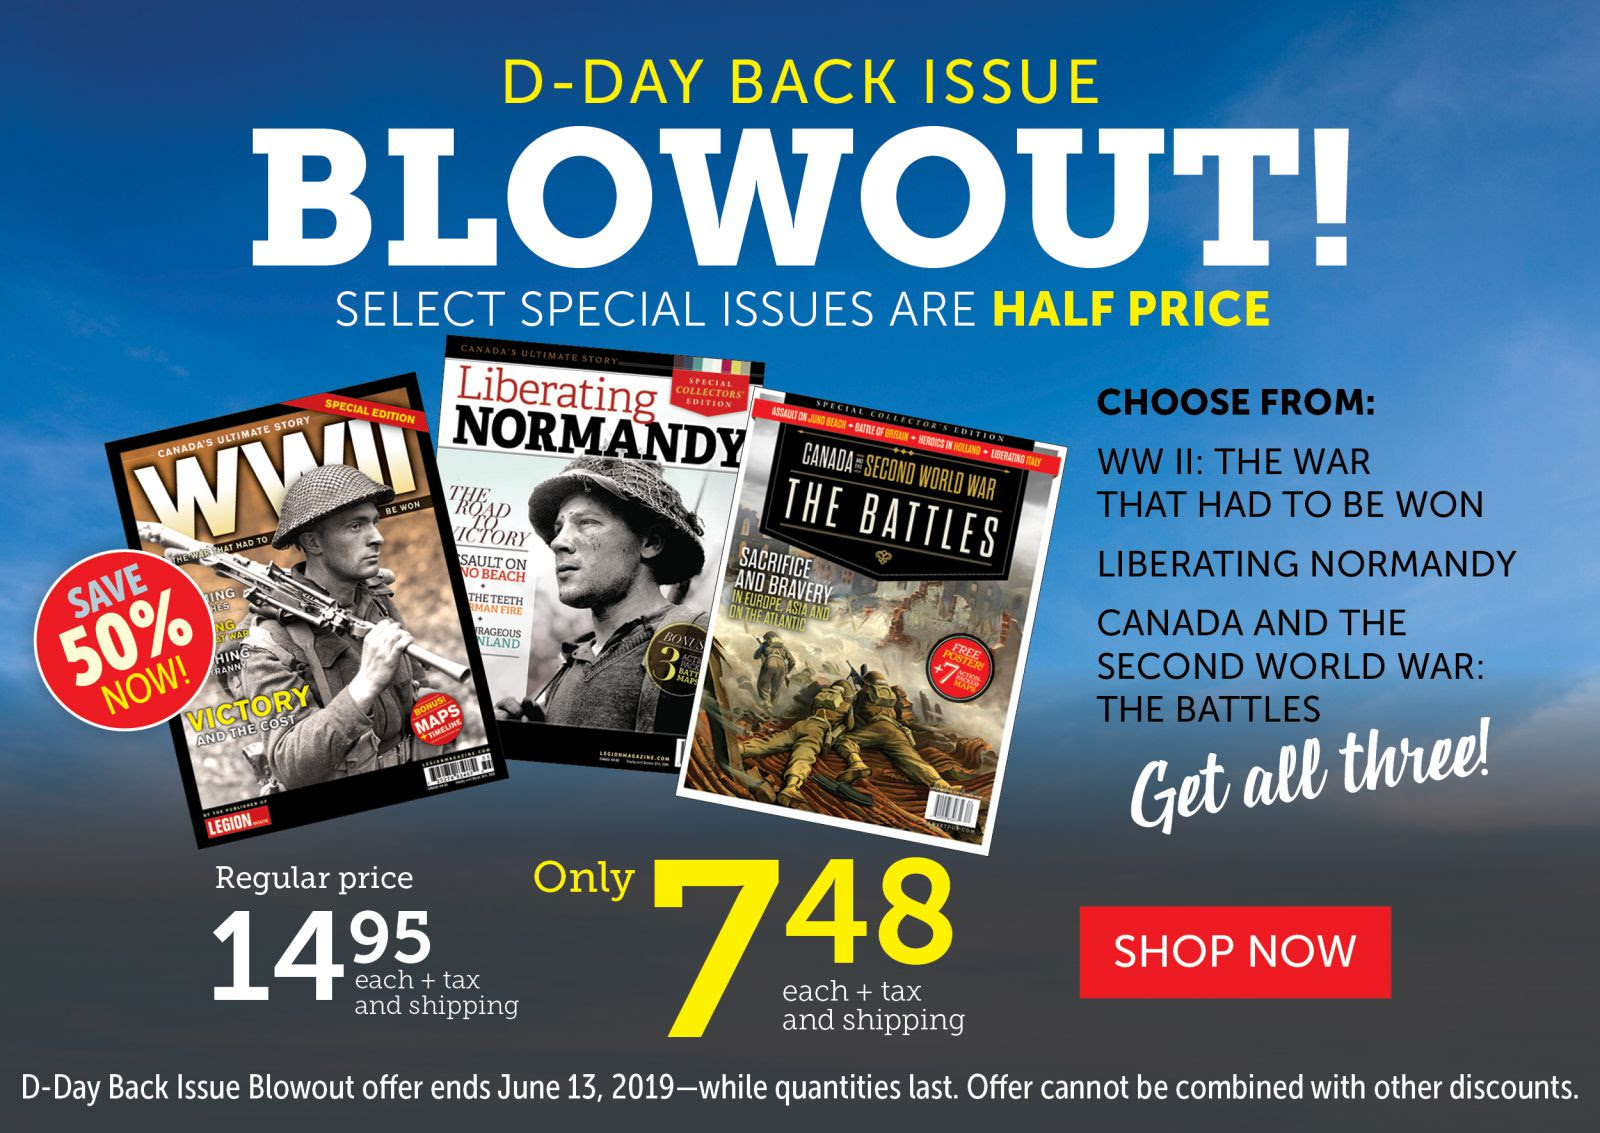 50% OFF D-DAY SPECIAL ISSUES!